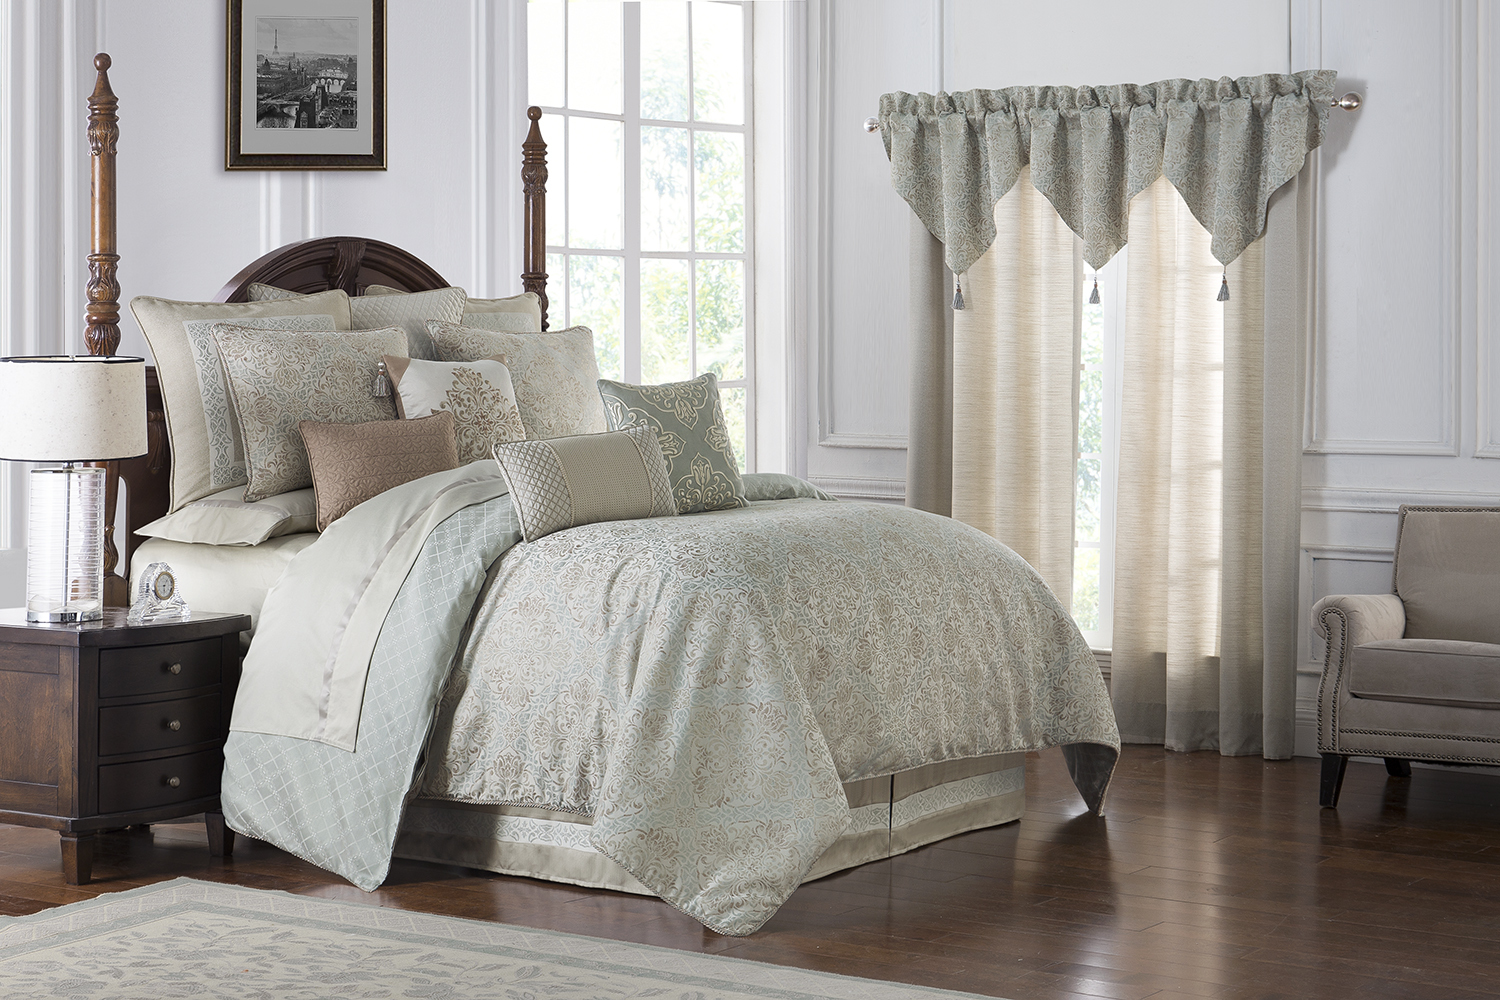 Pale Blue Comforter: Gwyneth Pale Blue By Waterford Luxury Bedding